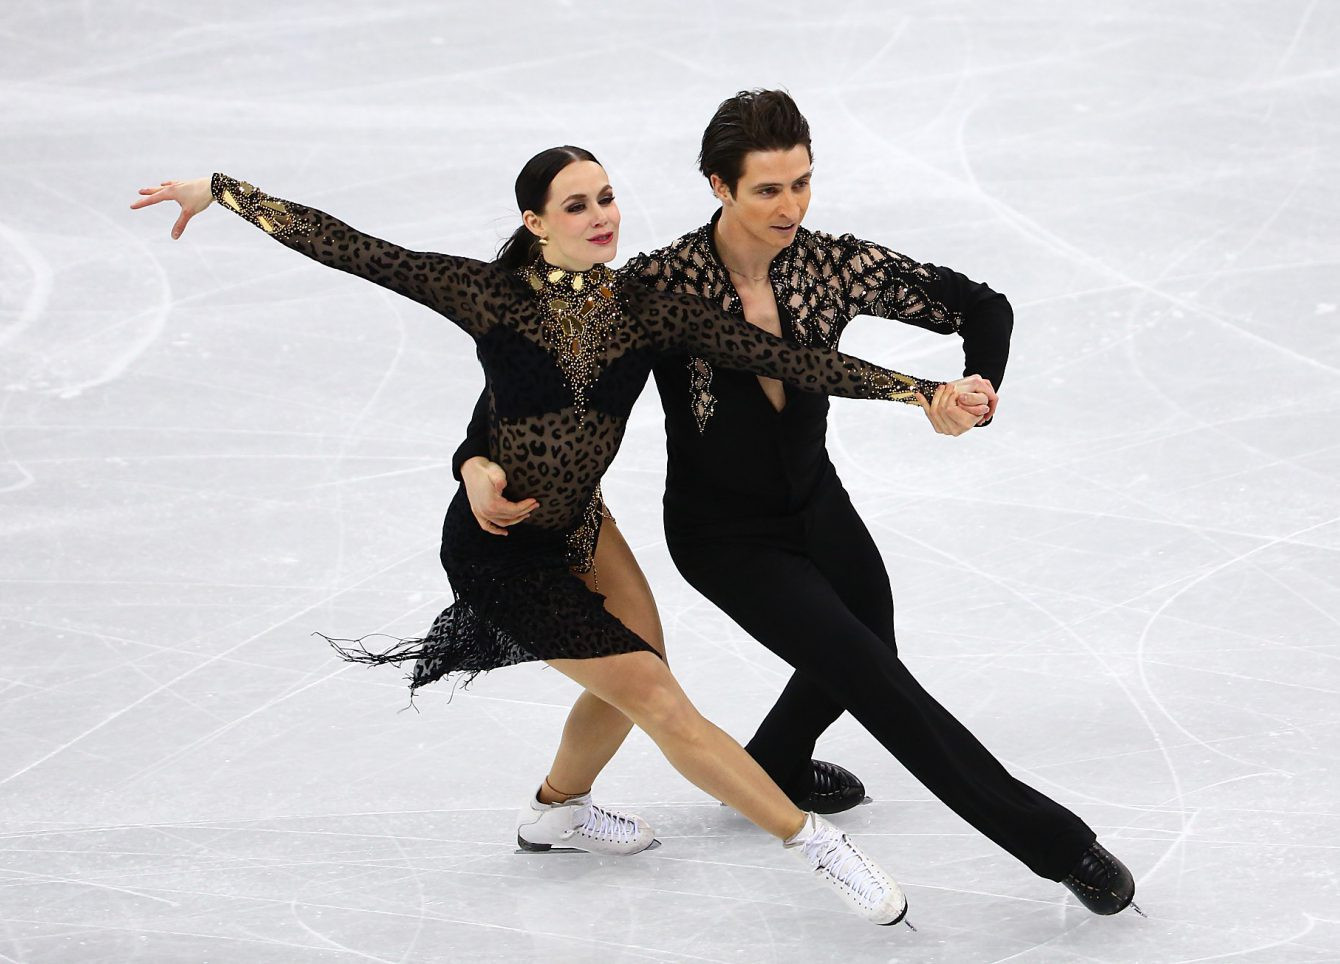 Tessa Virtue and Scott Moir won one of their two golds at the 2018 Winter Olympics in the ice dance category ©COC